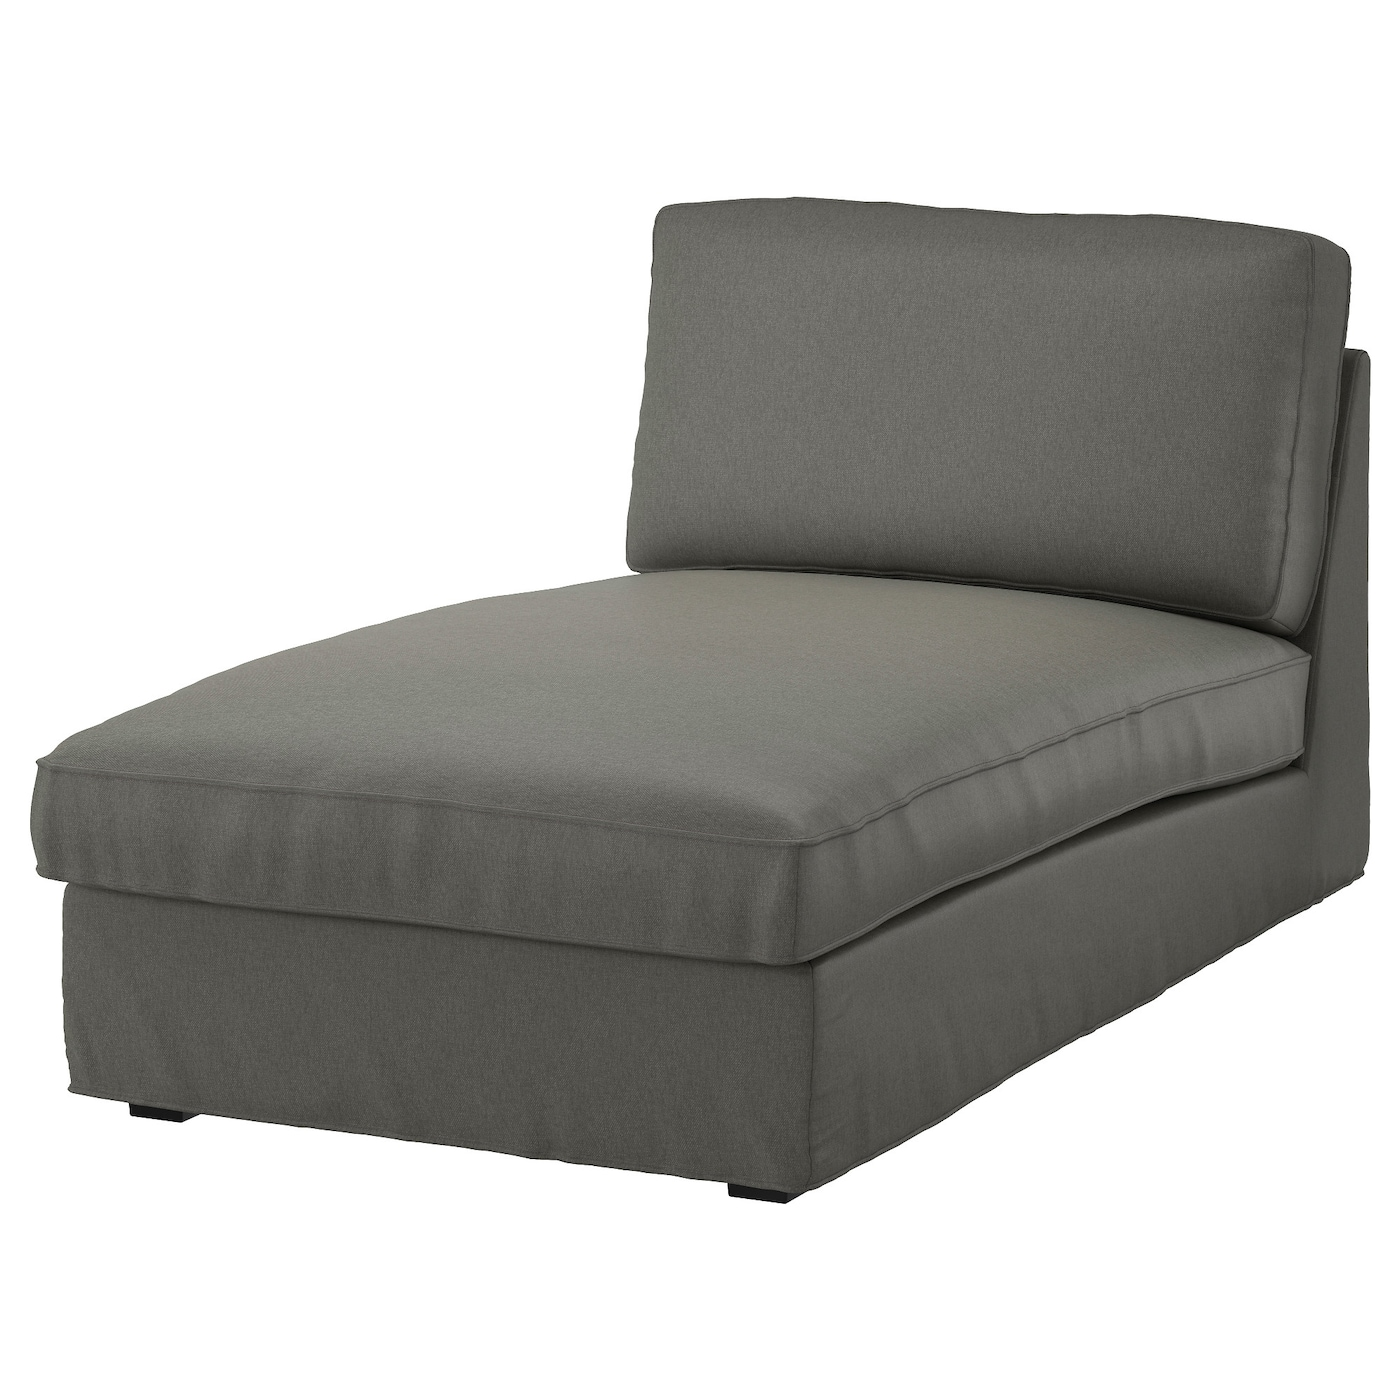 Kivik cover for chaise longue borred grey green ikea - Chaise longue exterieur ikea ...